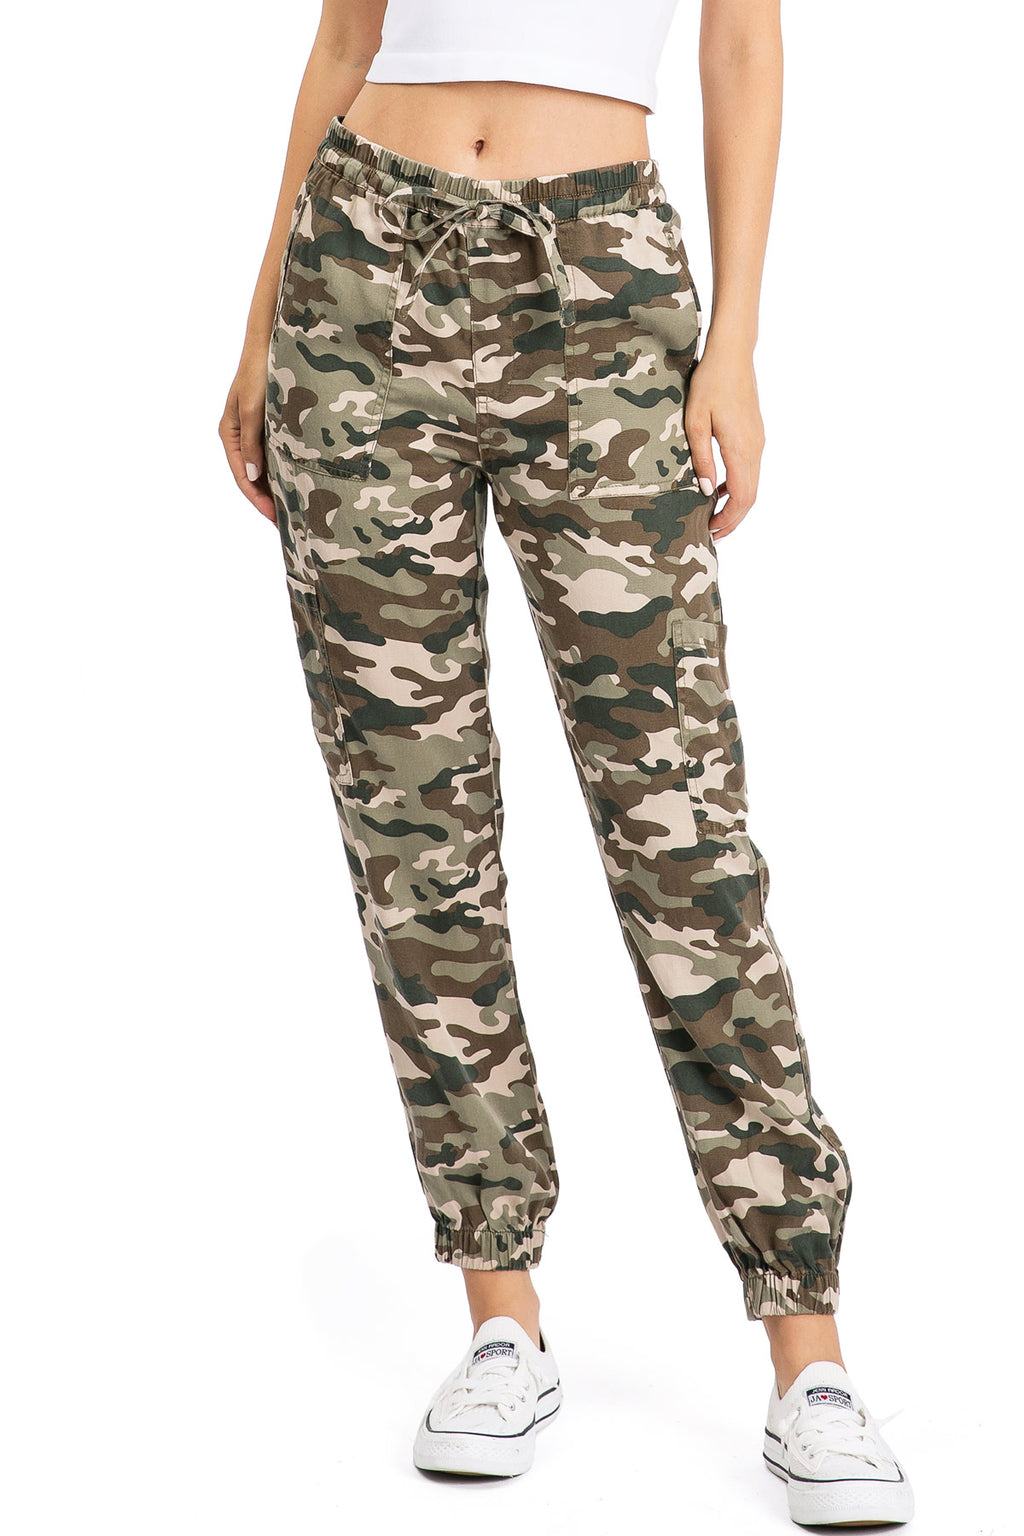 Classified Camo Joggers